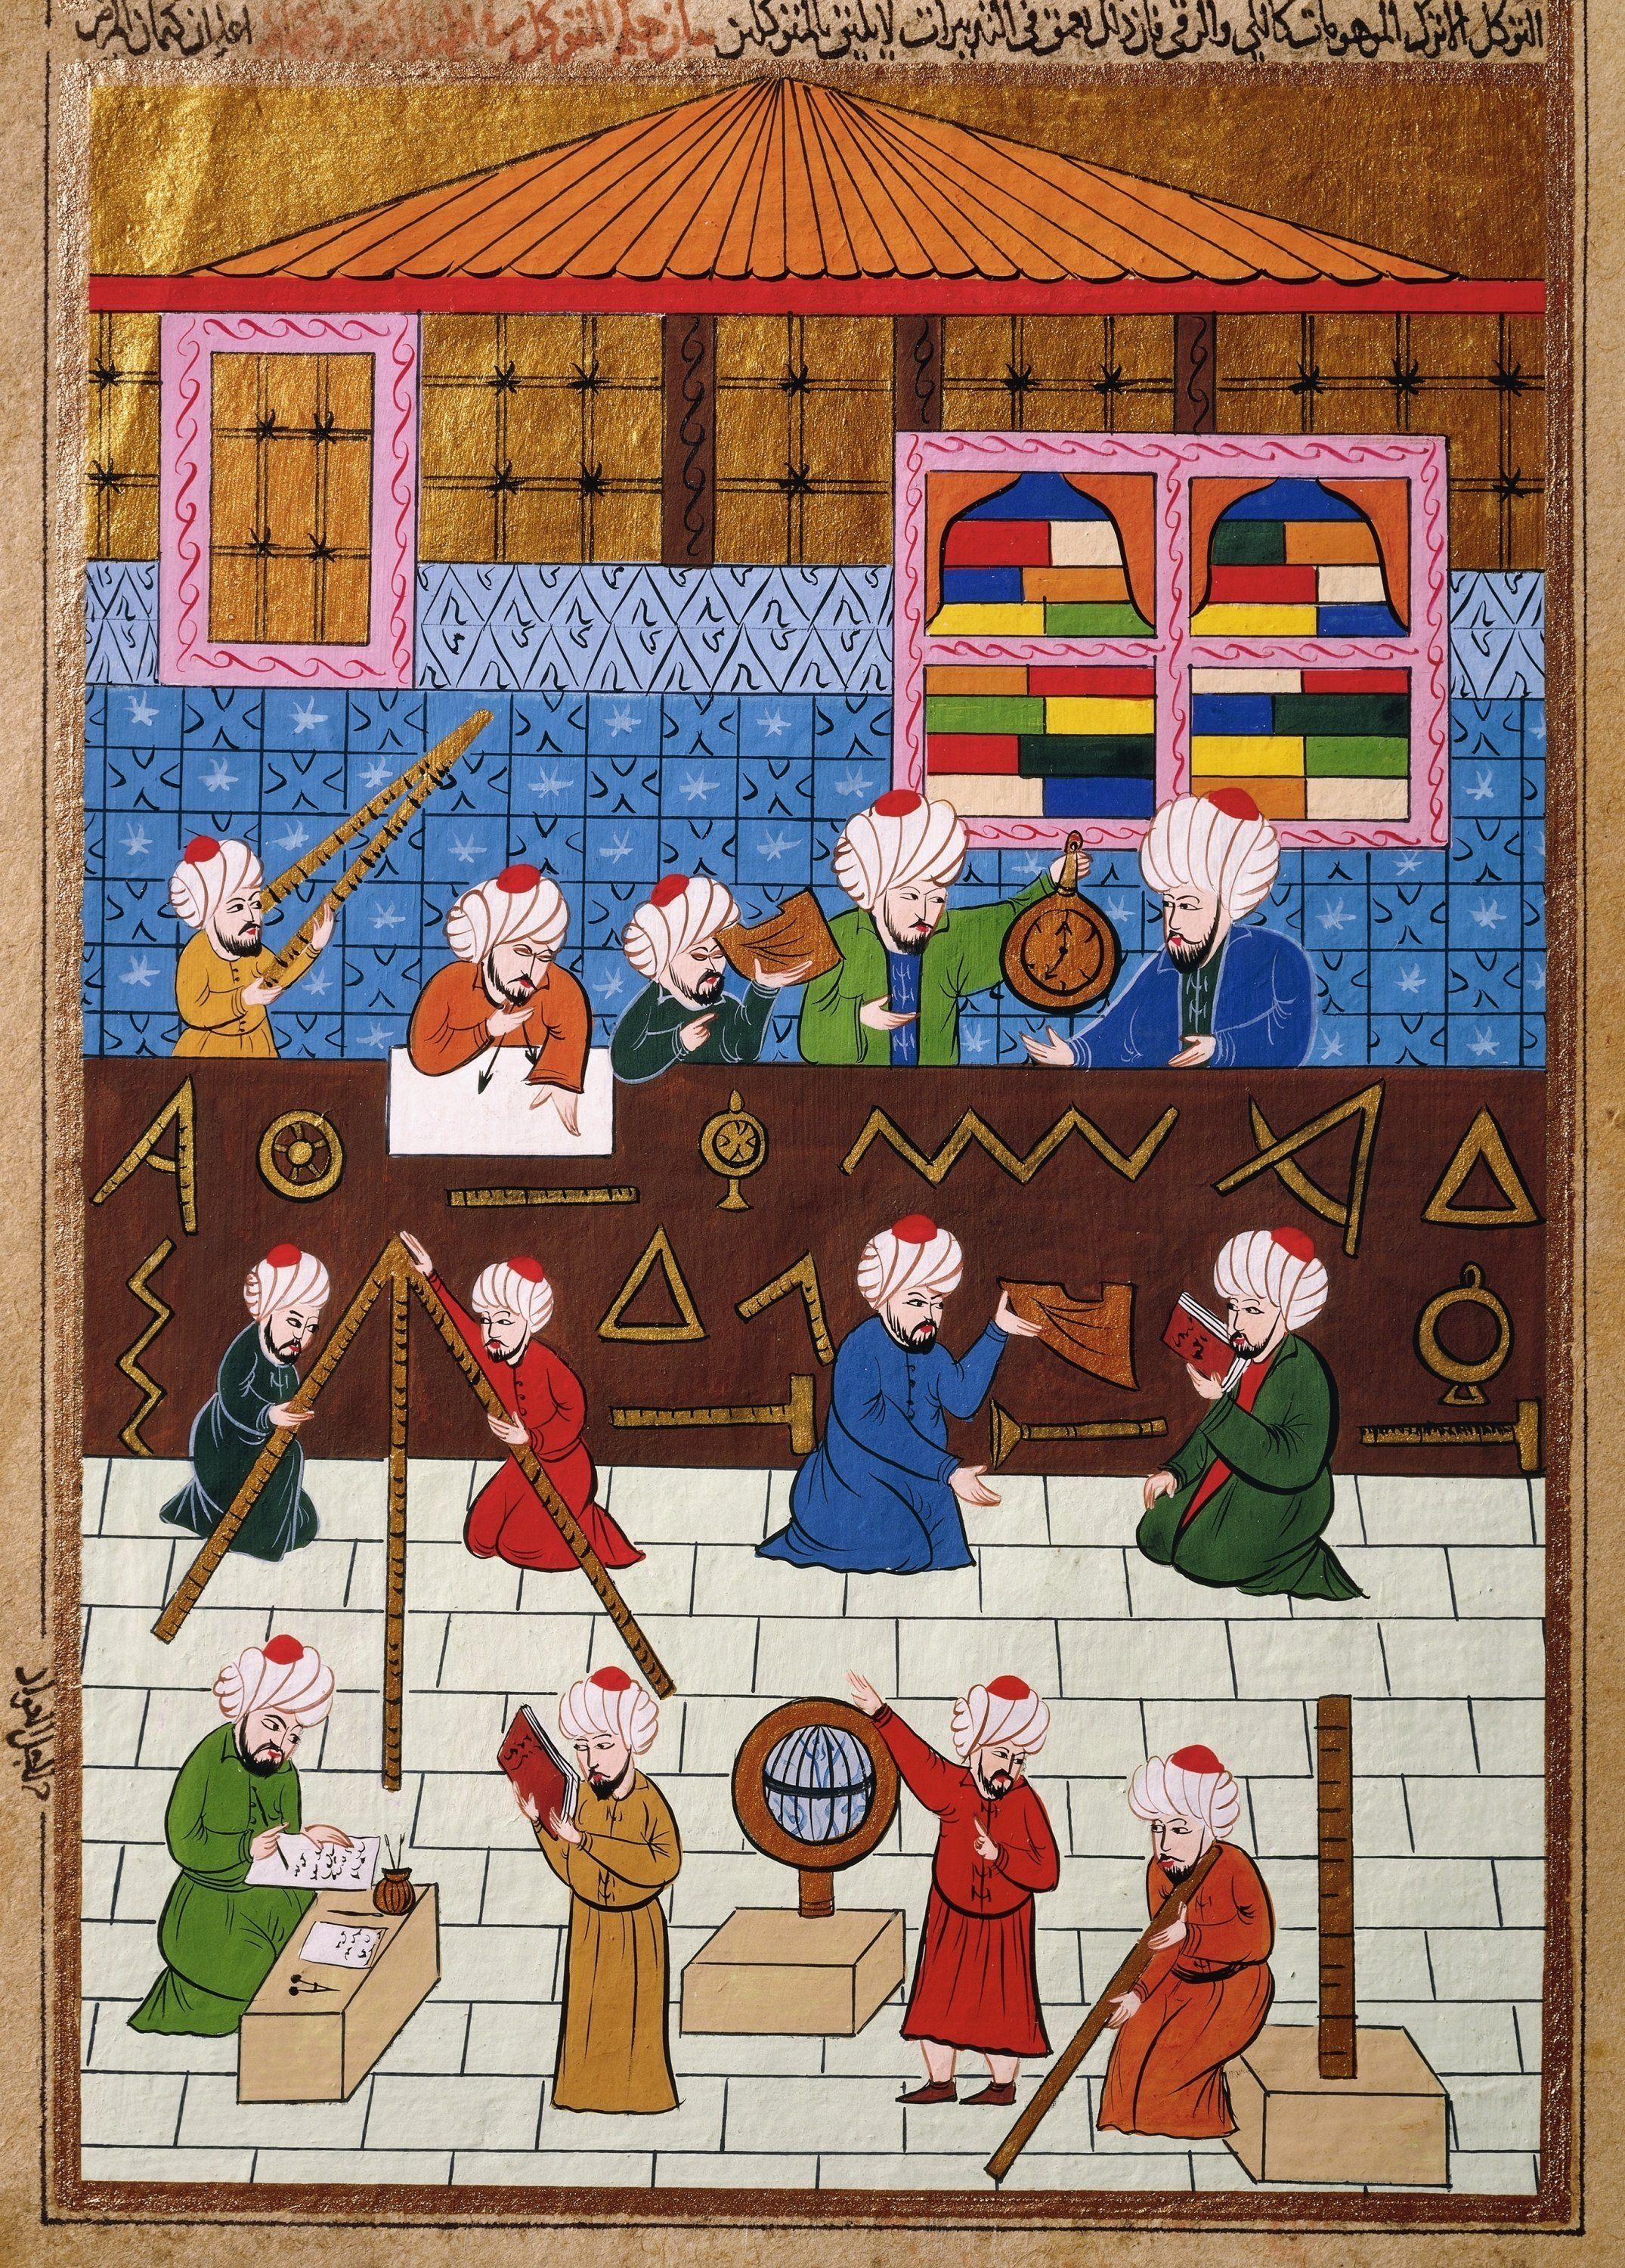 Scholars and astronomers read during their researches in the observatory of Galata tower in this 16-th century Ottoman miniature from Istanbul University Library (Getty Images)